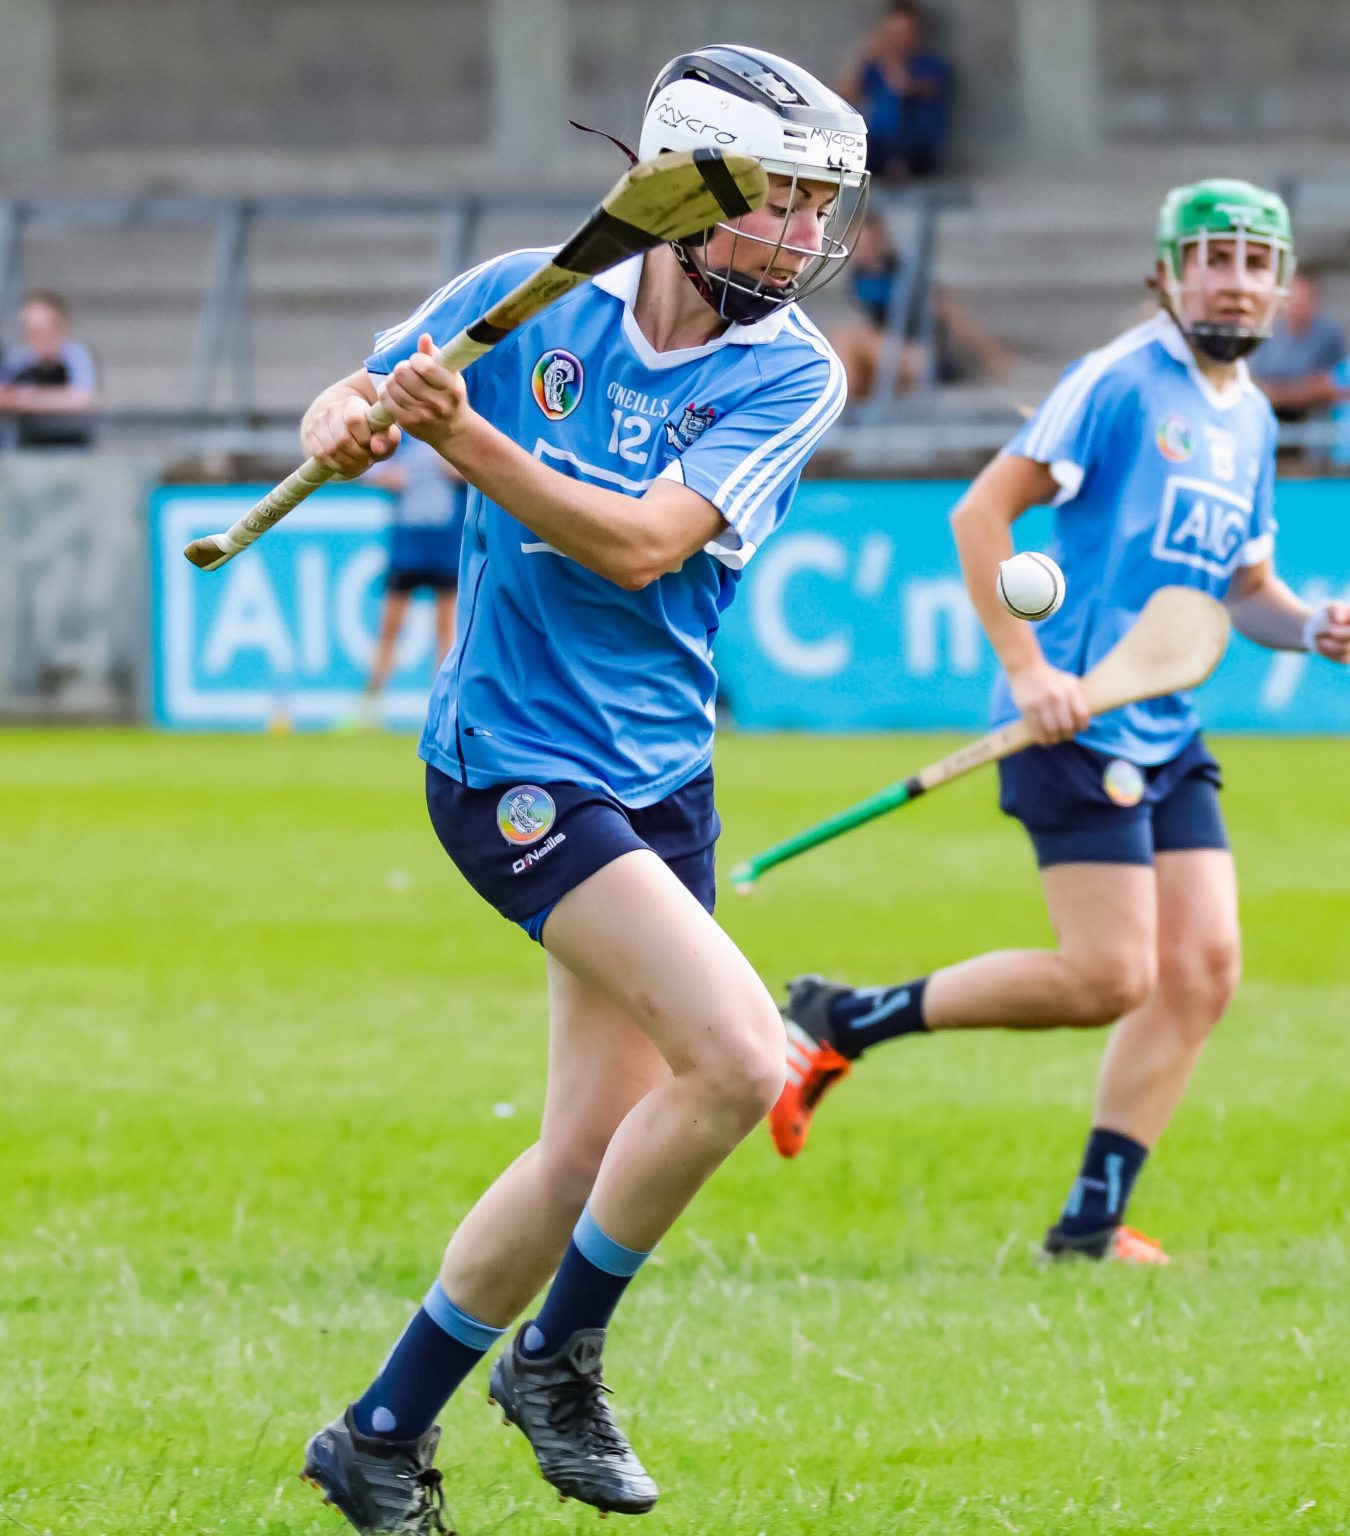 Dublin Camogie player in a sky blue jersey, navy skort and black and white helmet striking the ball with her hurl as Dublin who are underdogs face Galway in the quarter finals